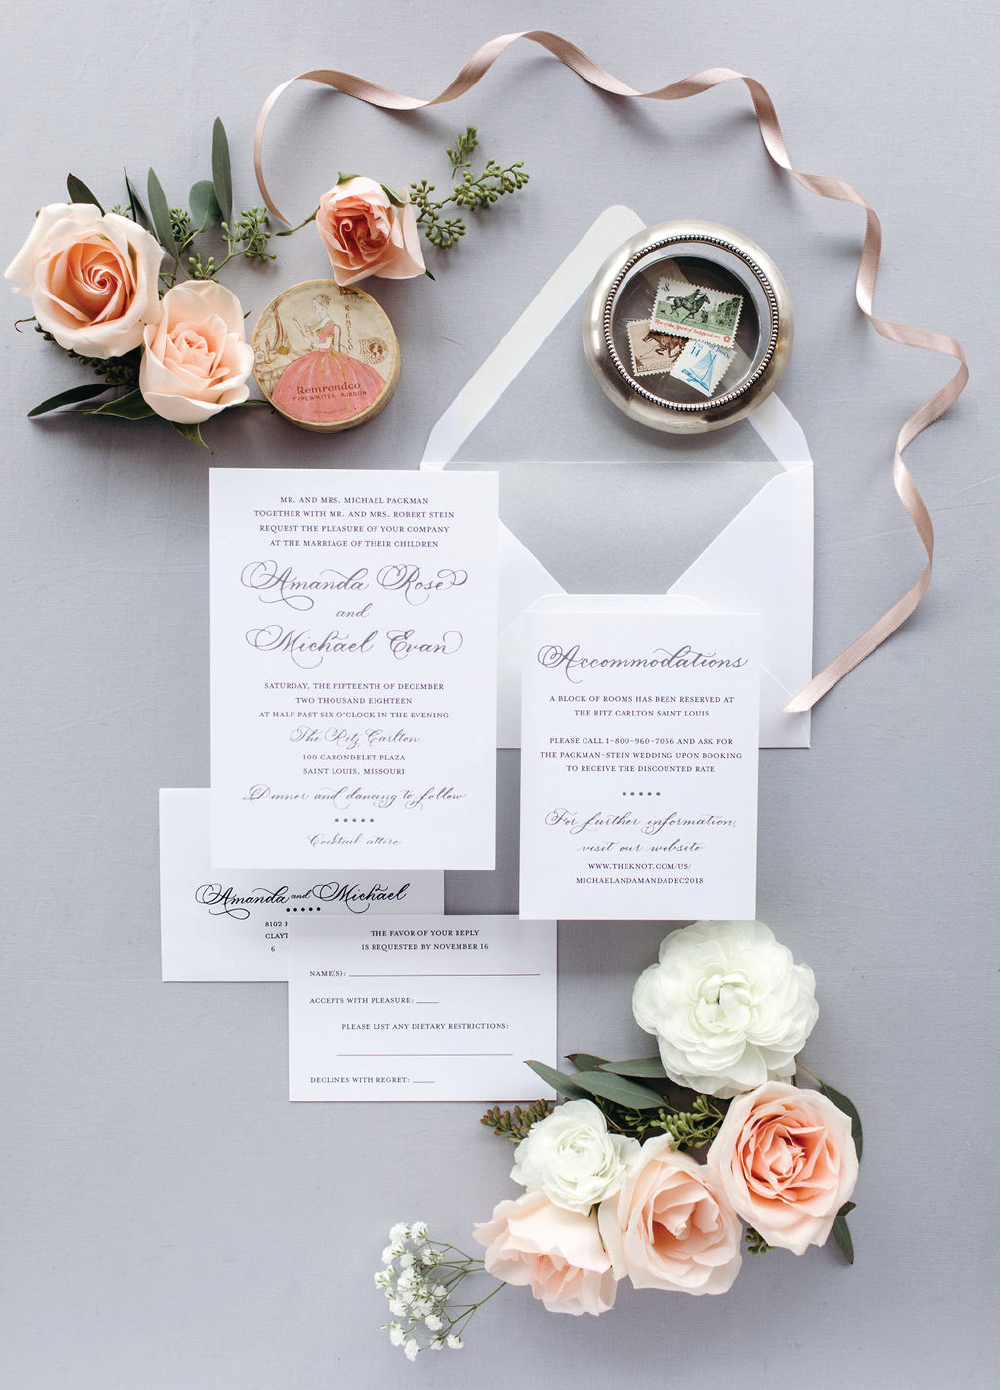 Elegant silver foil stamping and black wedding invitations with calligraphy by Leah E. Moss Designs for Ritz Carlton St. Louis wedding